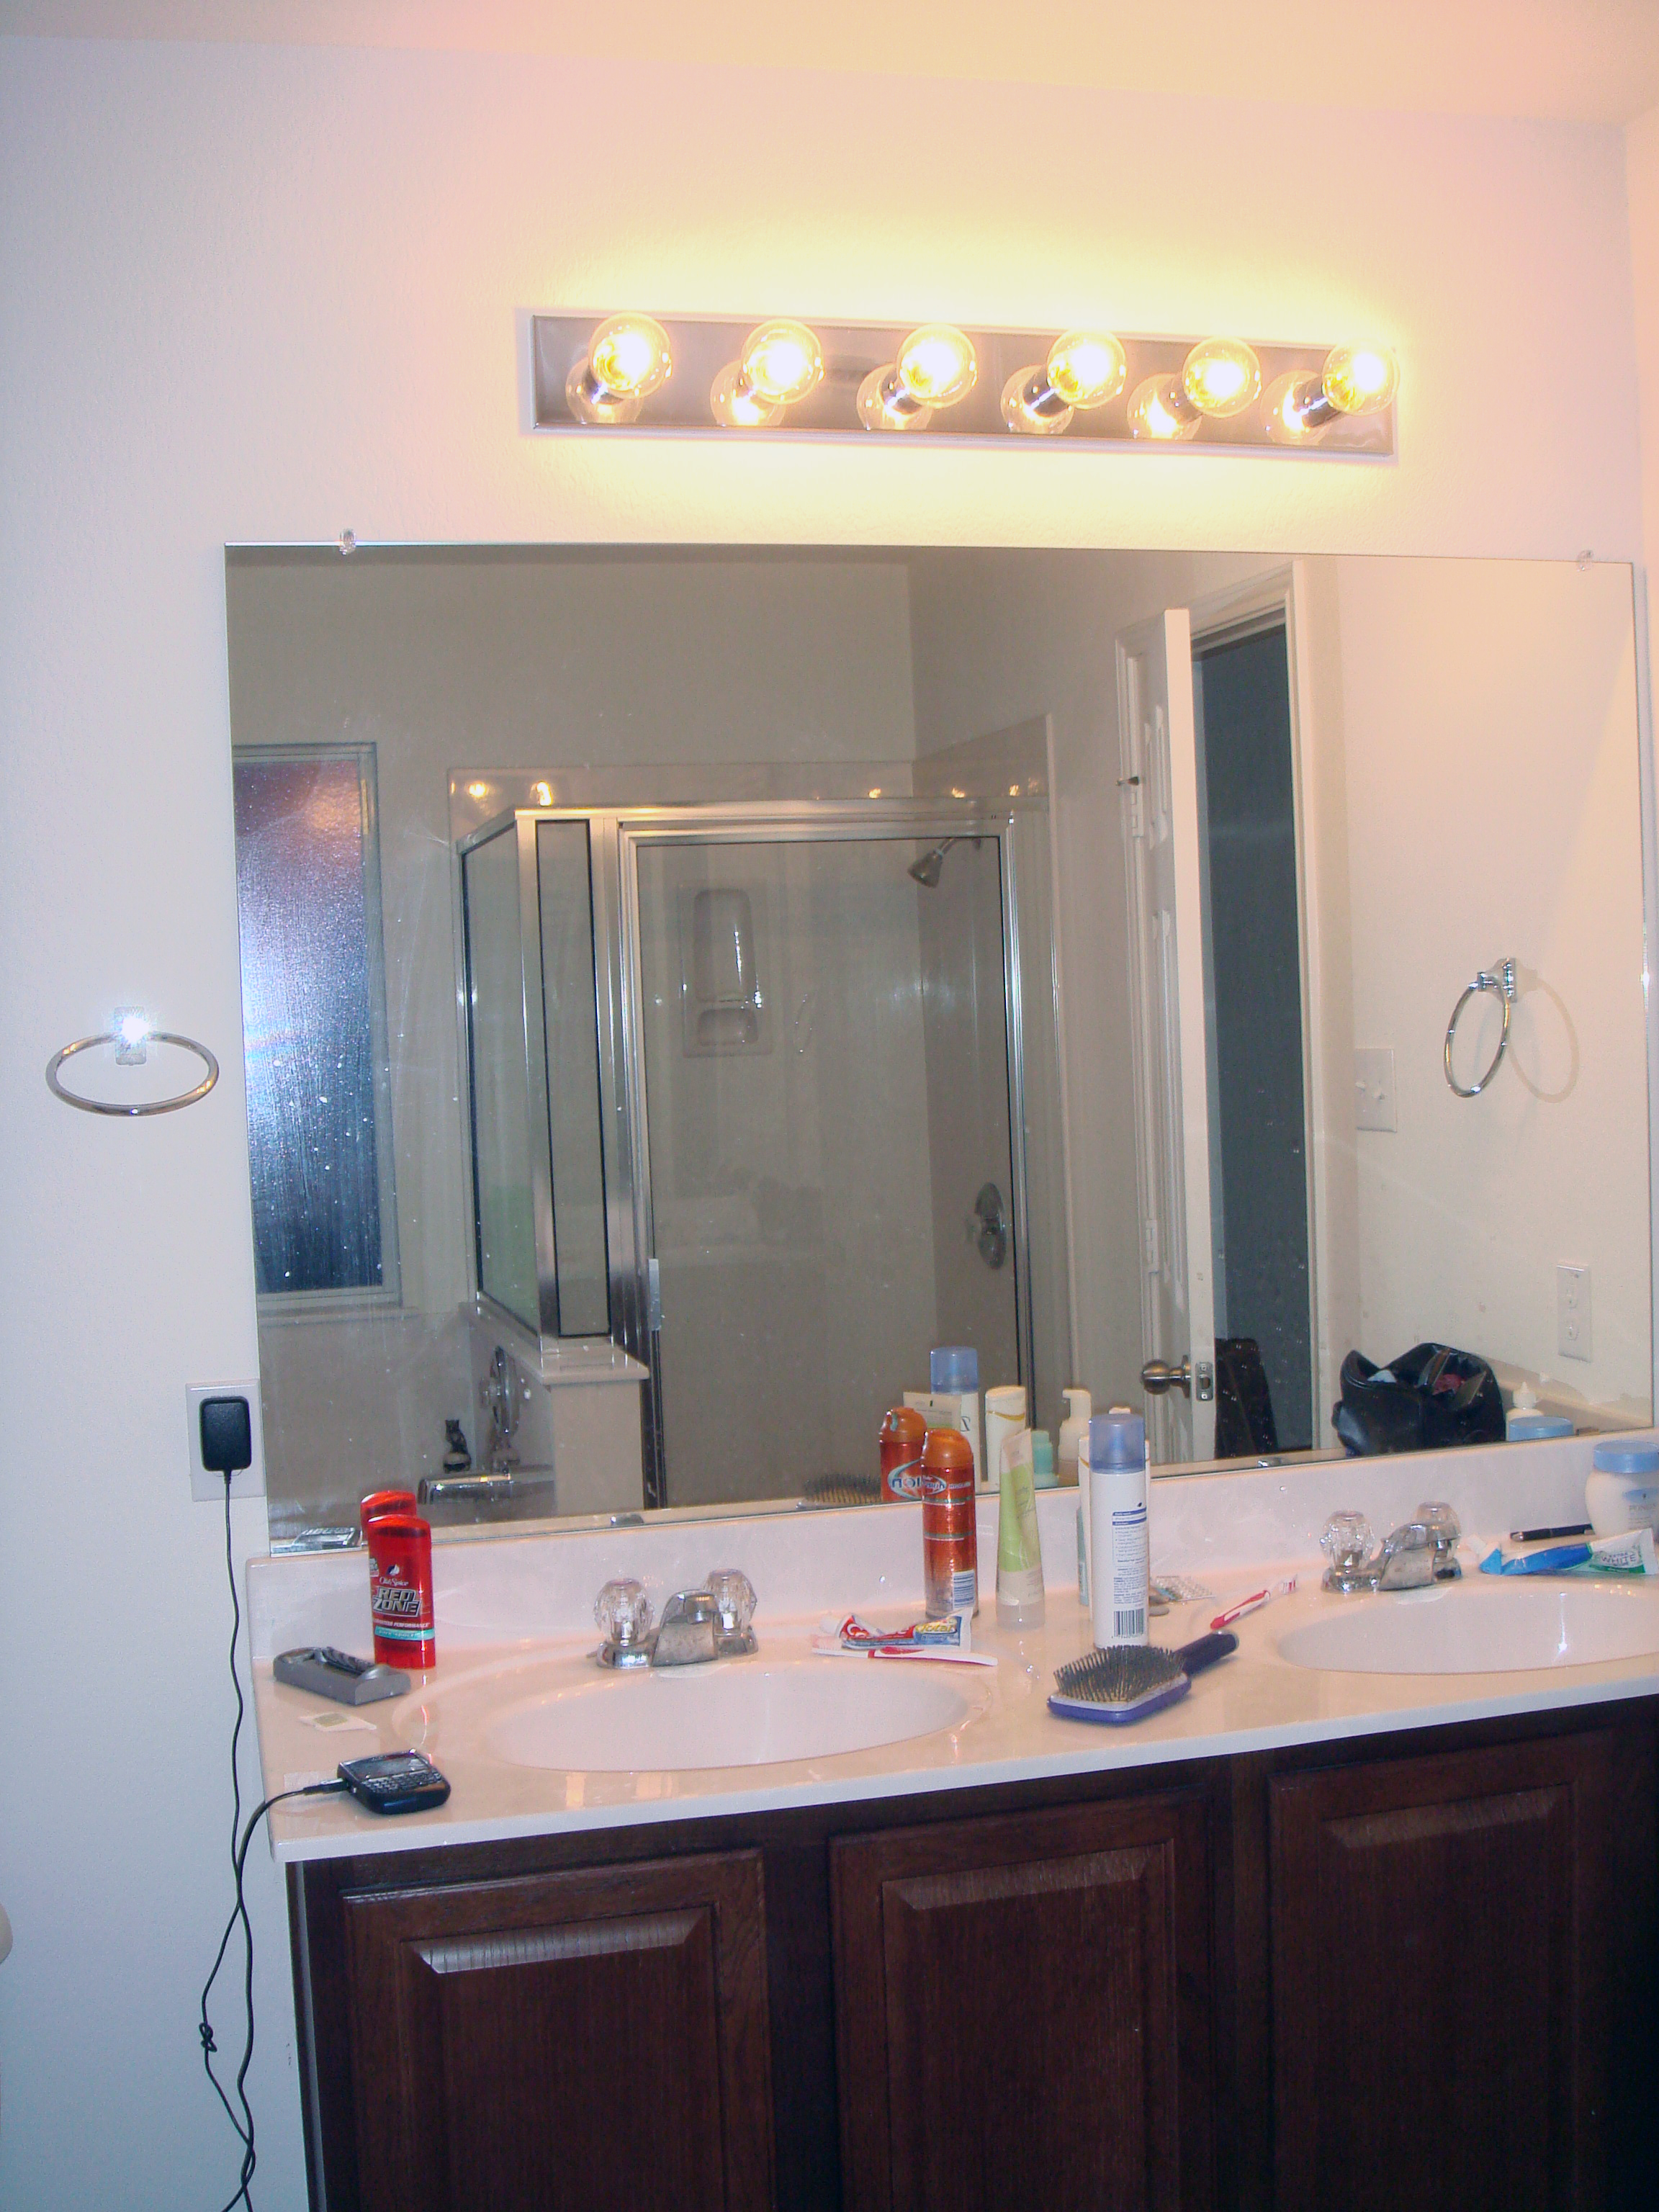 Bathroom lighting: ideas, choices, and indecision | What the Vita